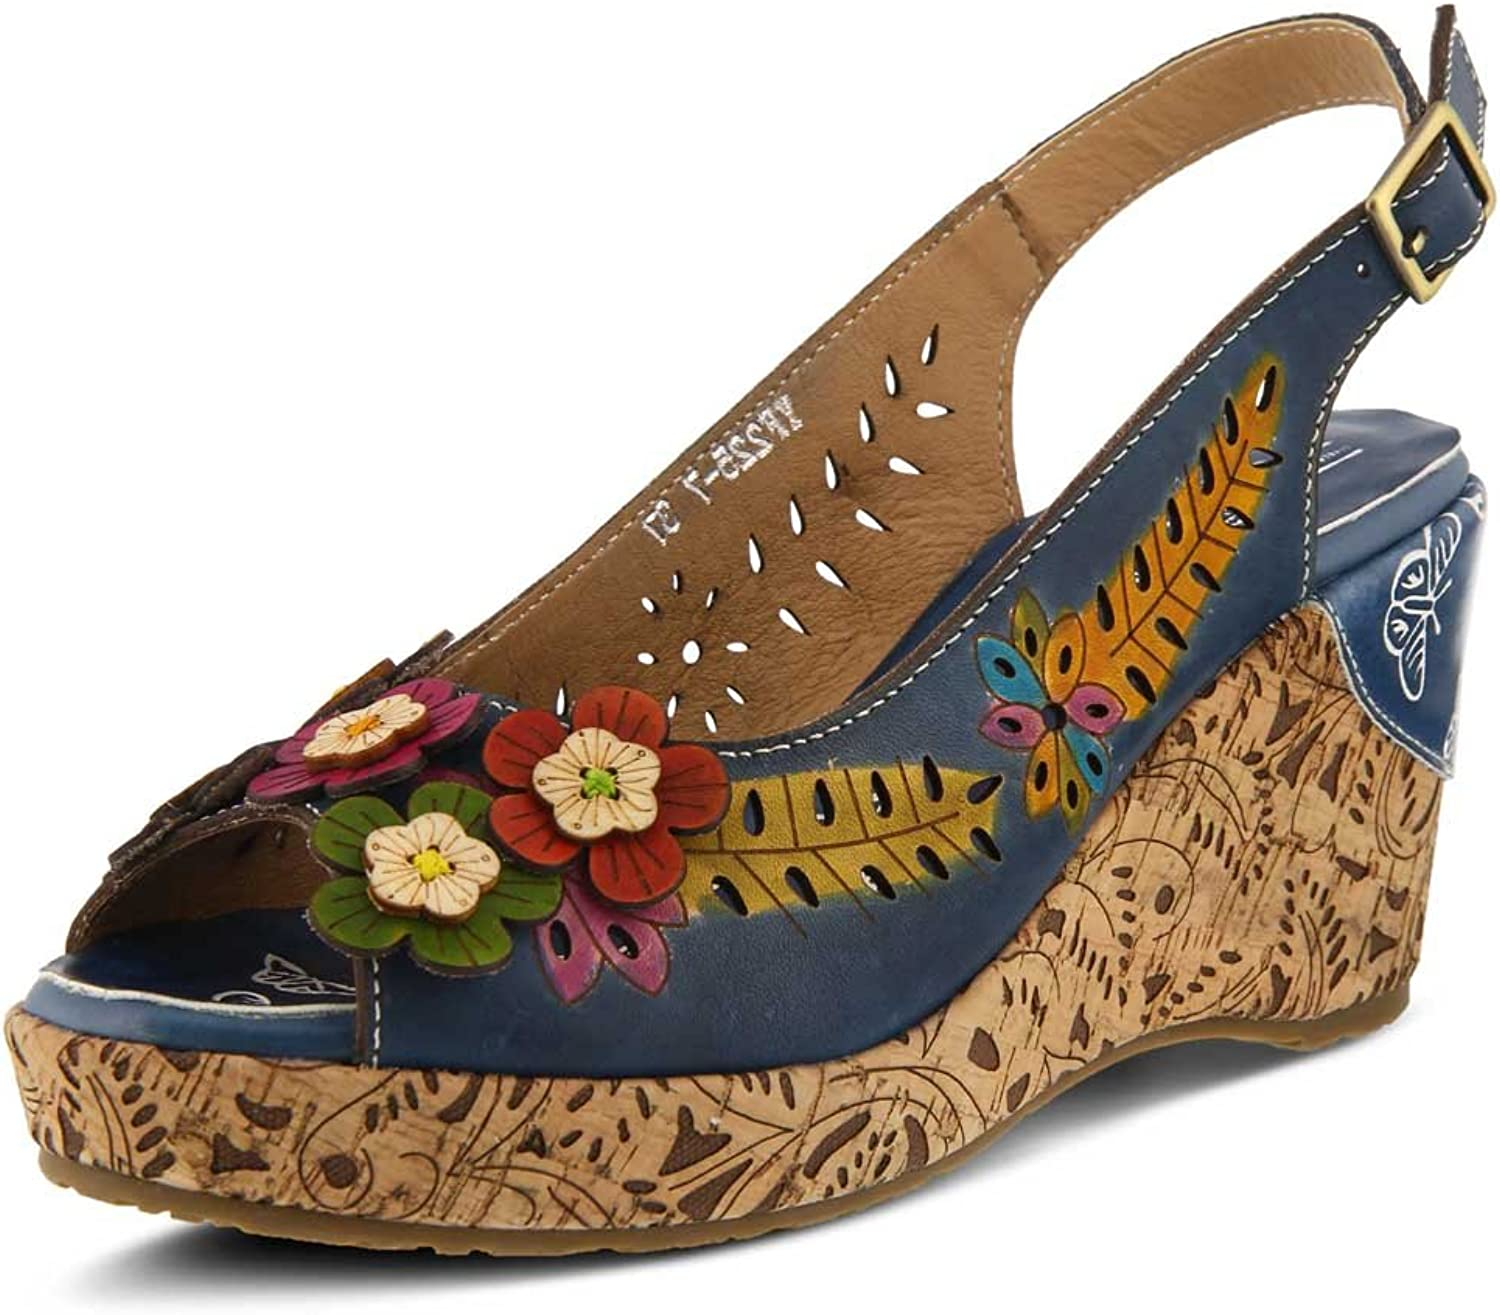 L'ARTISTE by Spring Step Women's Style Tuttifrutti Leather Sandal